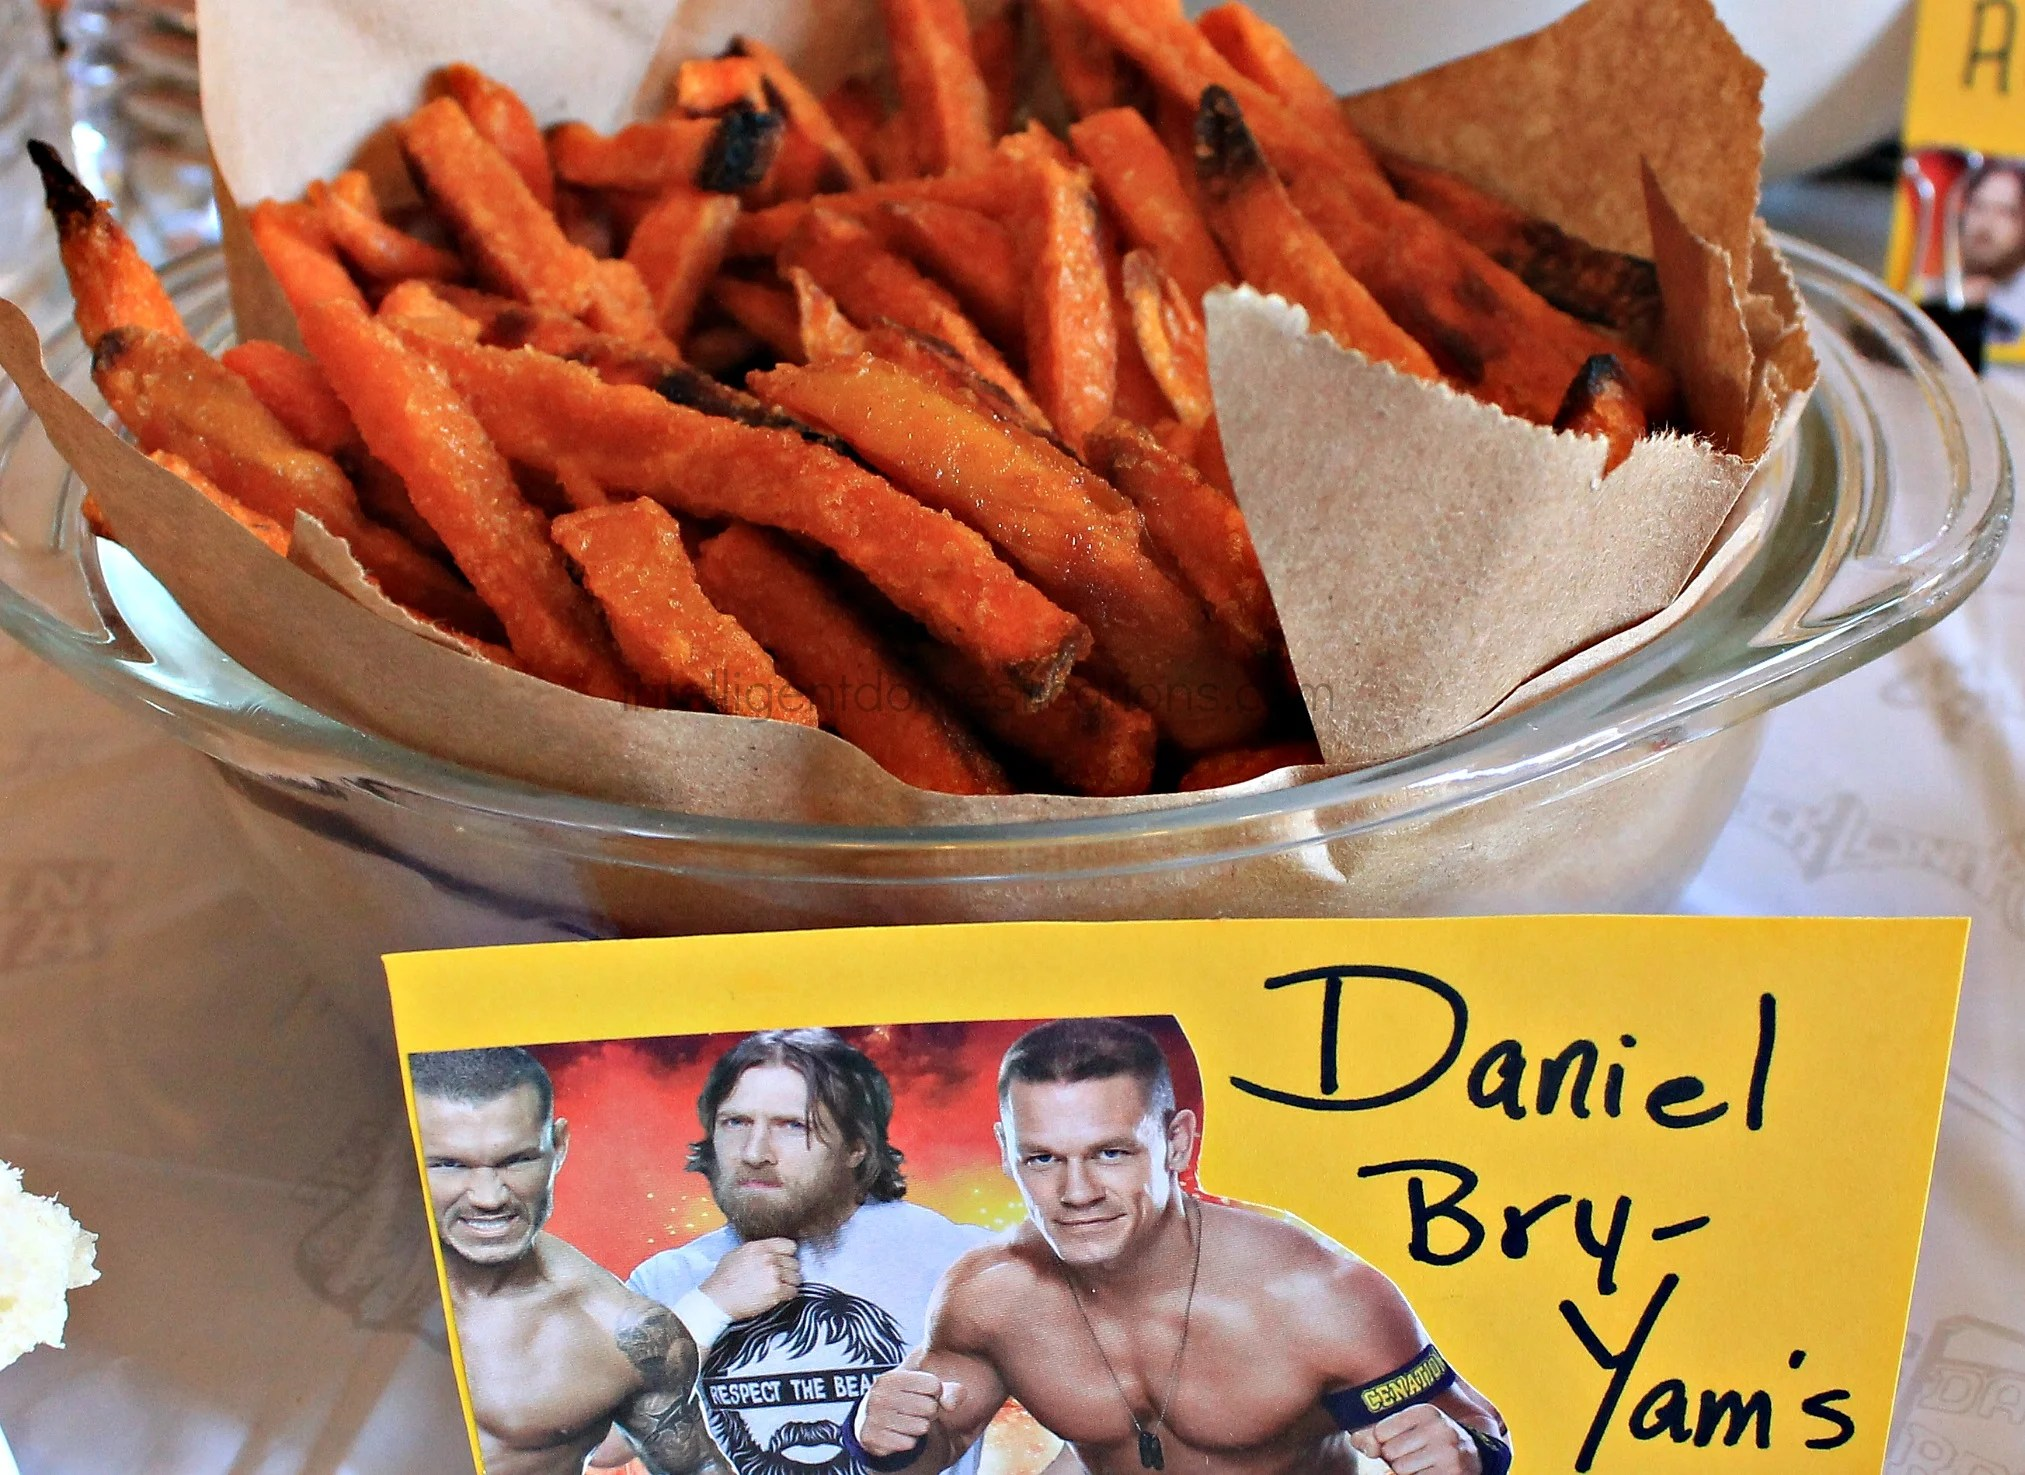 Serve your guests some Daniel Bry-Yams at your WWE Theme party. Ideas at intelligentdomestications.com